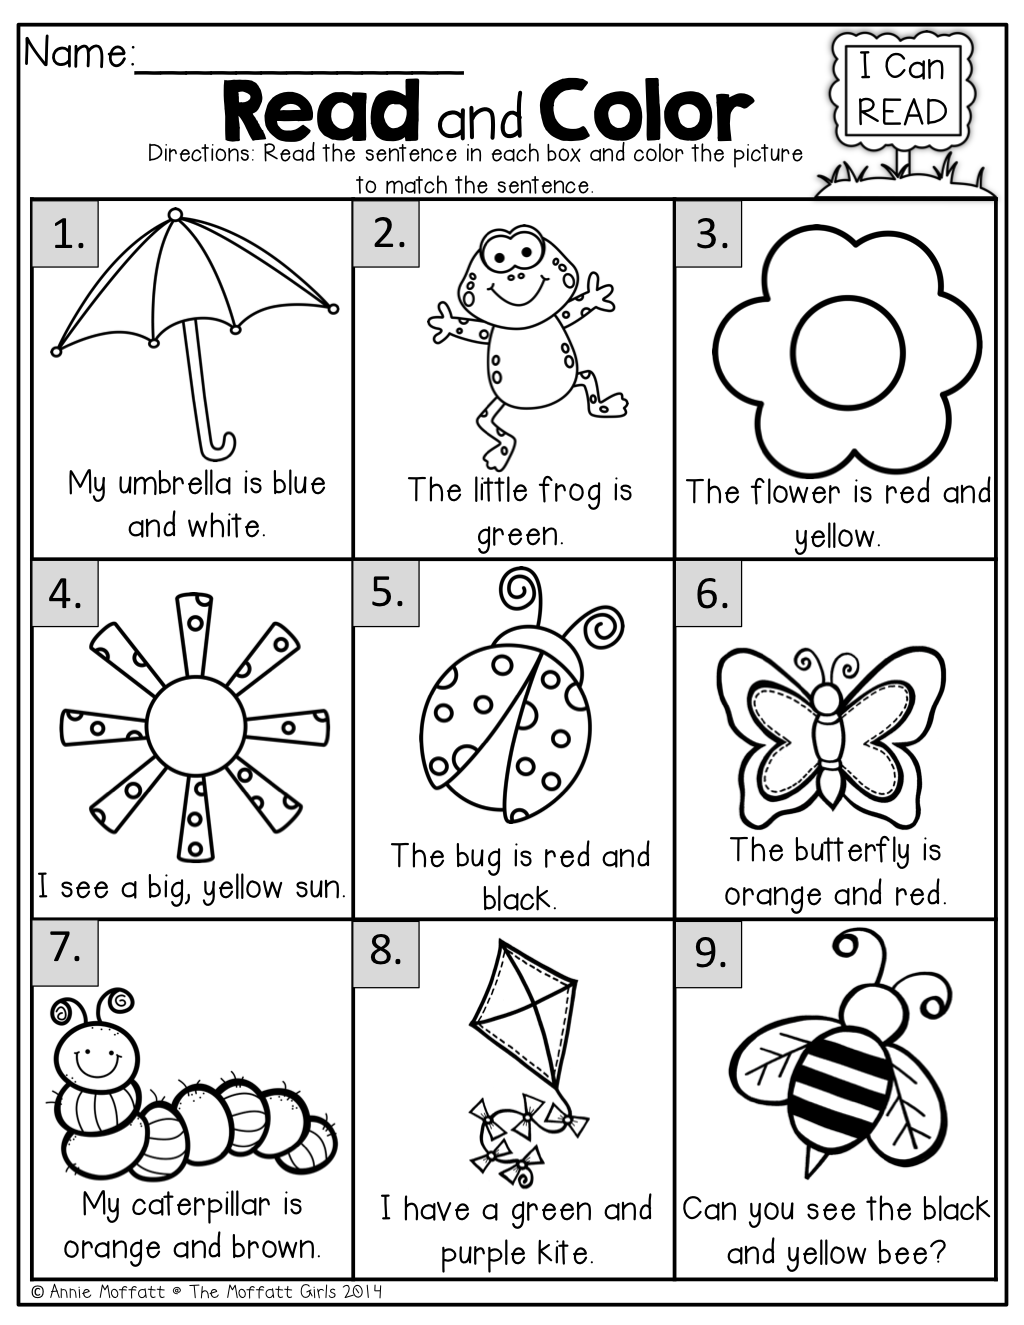 Read And Color Simple Sentences For Beginning Readers